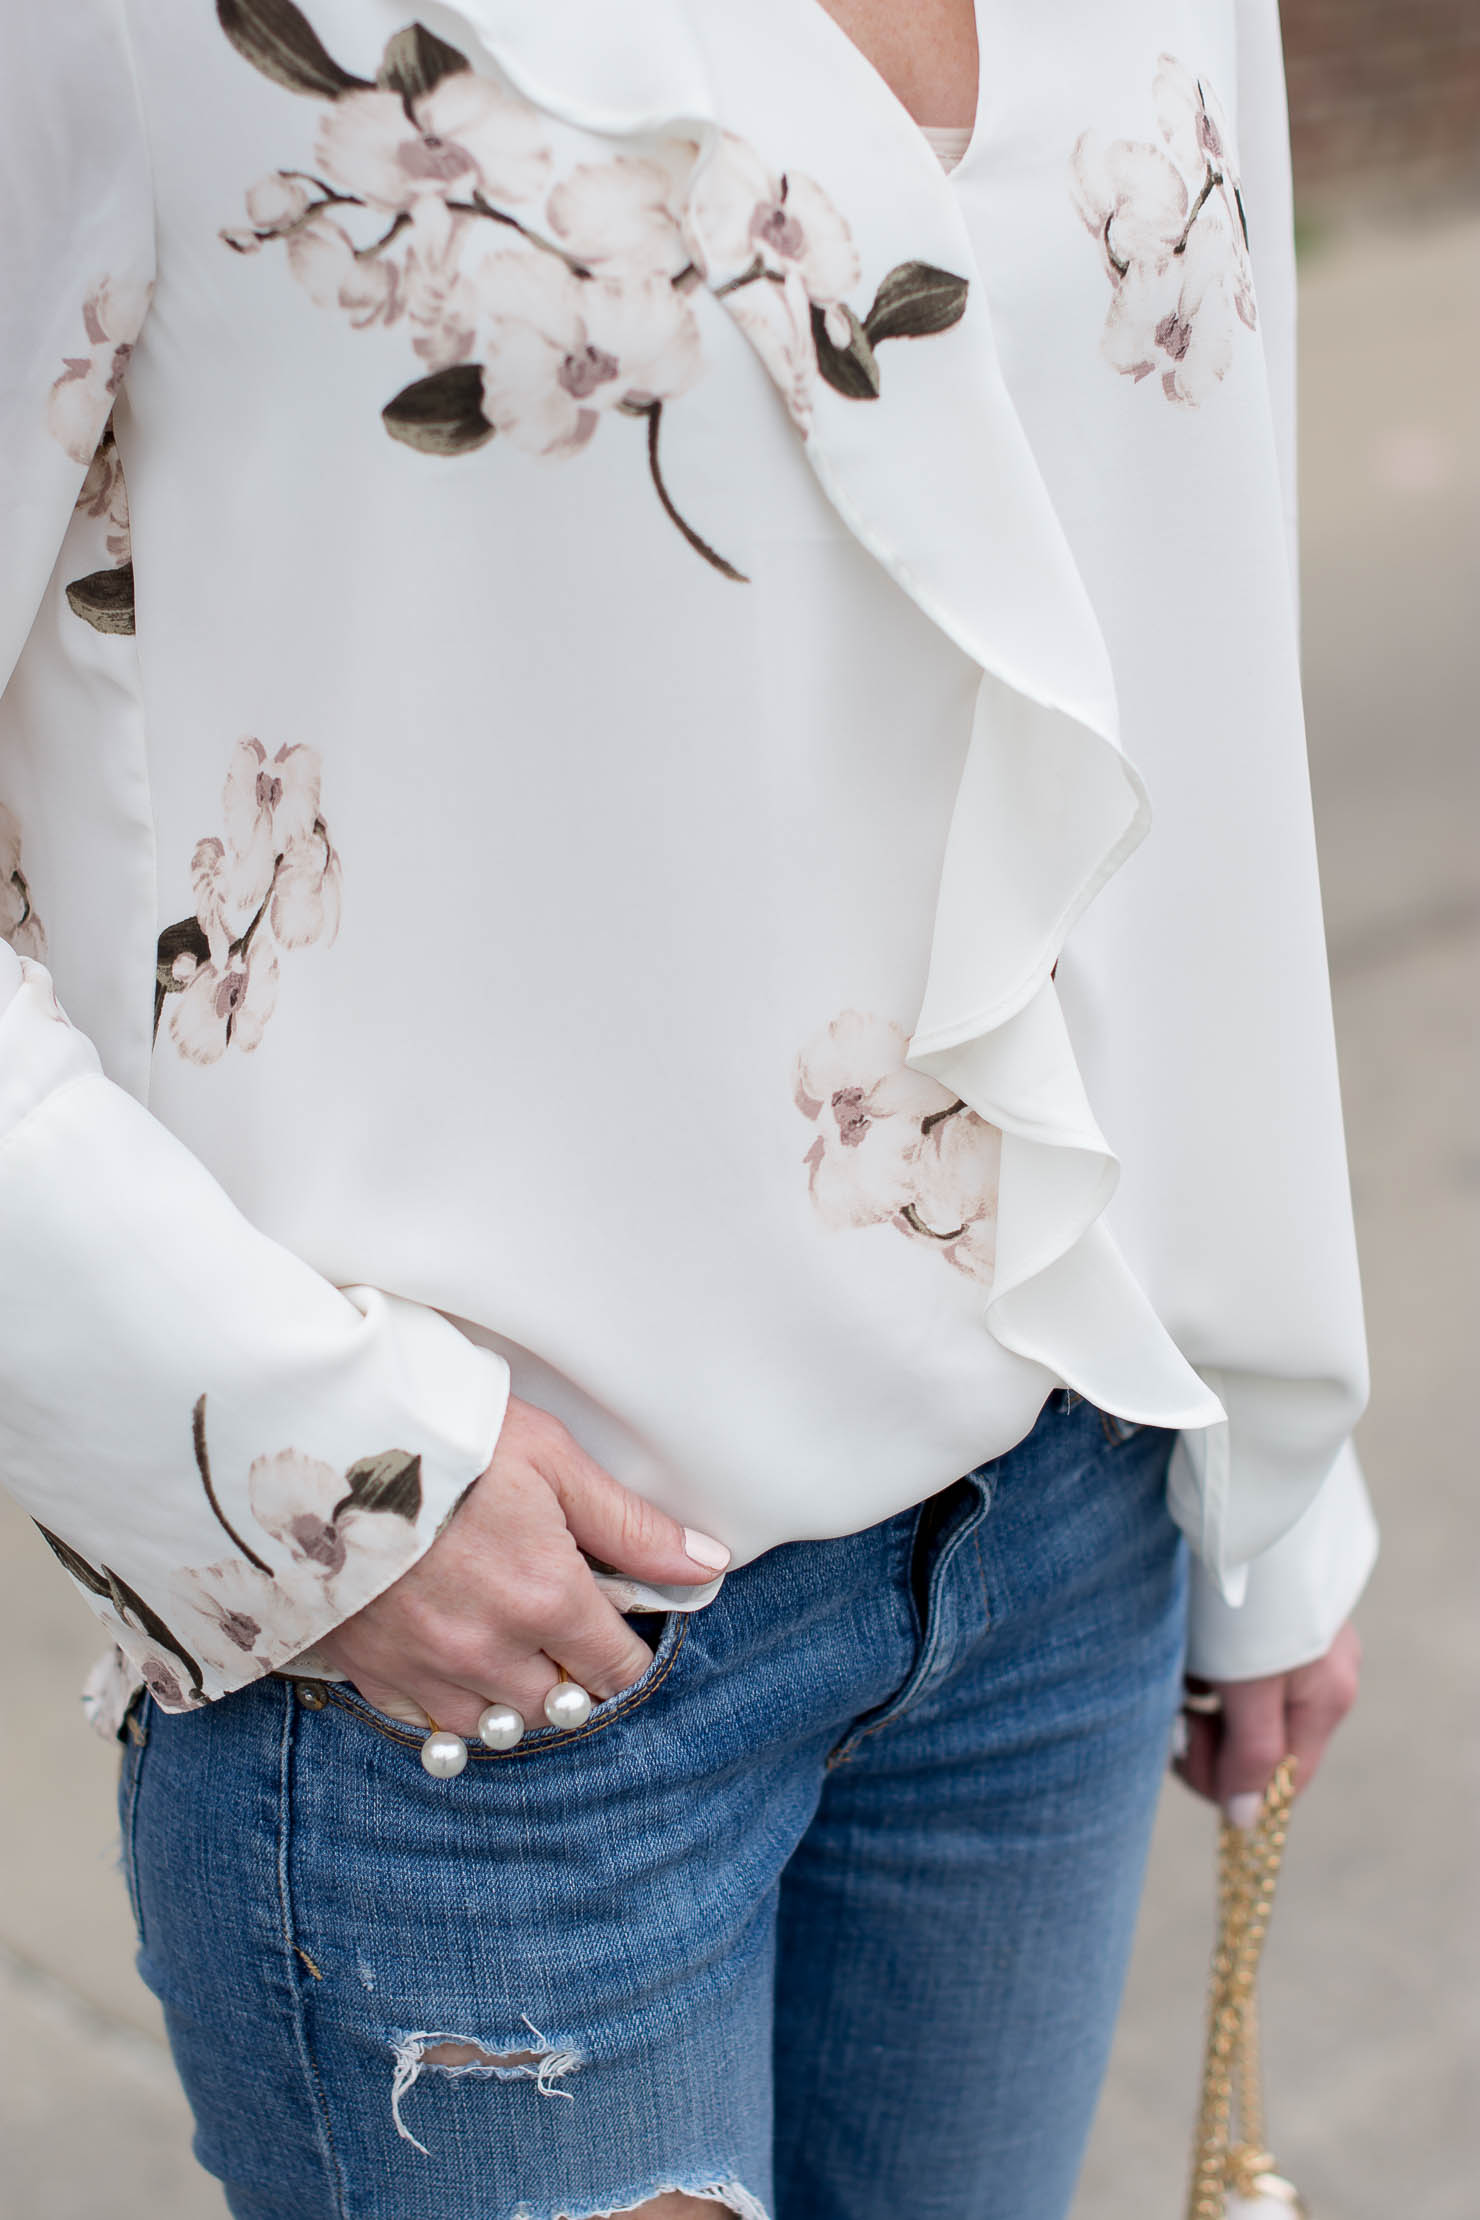 how to wear a floral print as a basics girl, maven-dynamite-white-chocker-color-floral-blouse-spring-outfit-how-to-wear-florals-chloe-drew-dupe